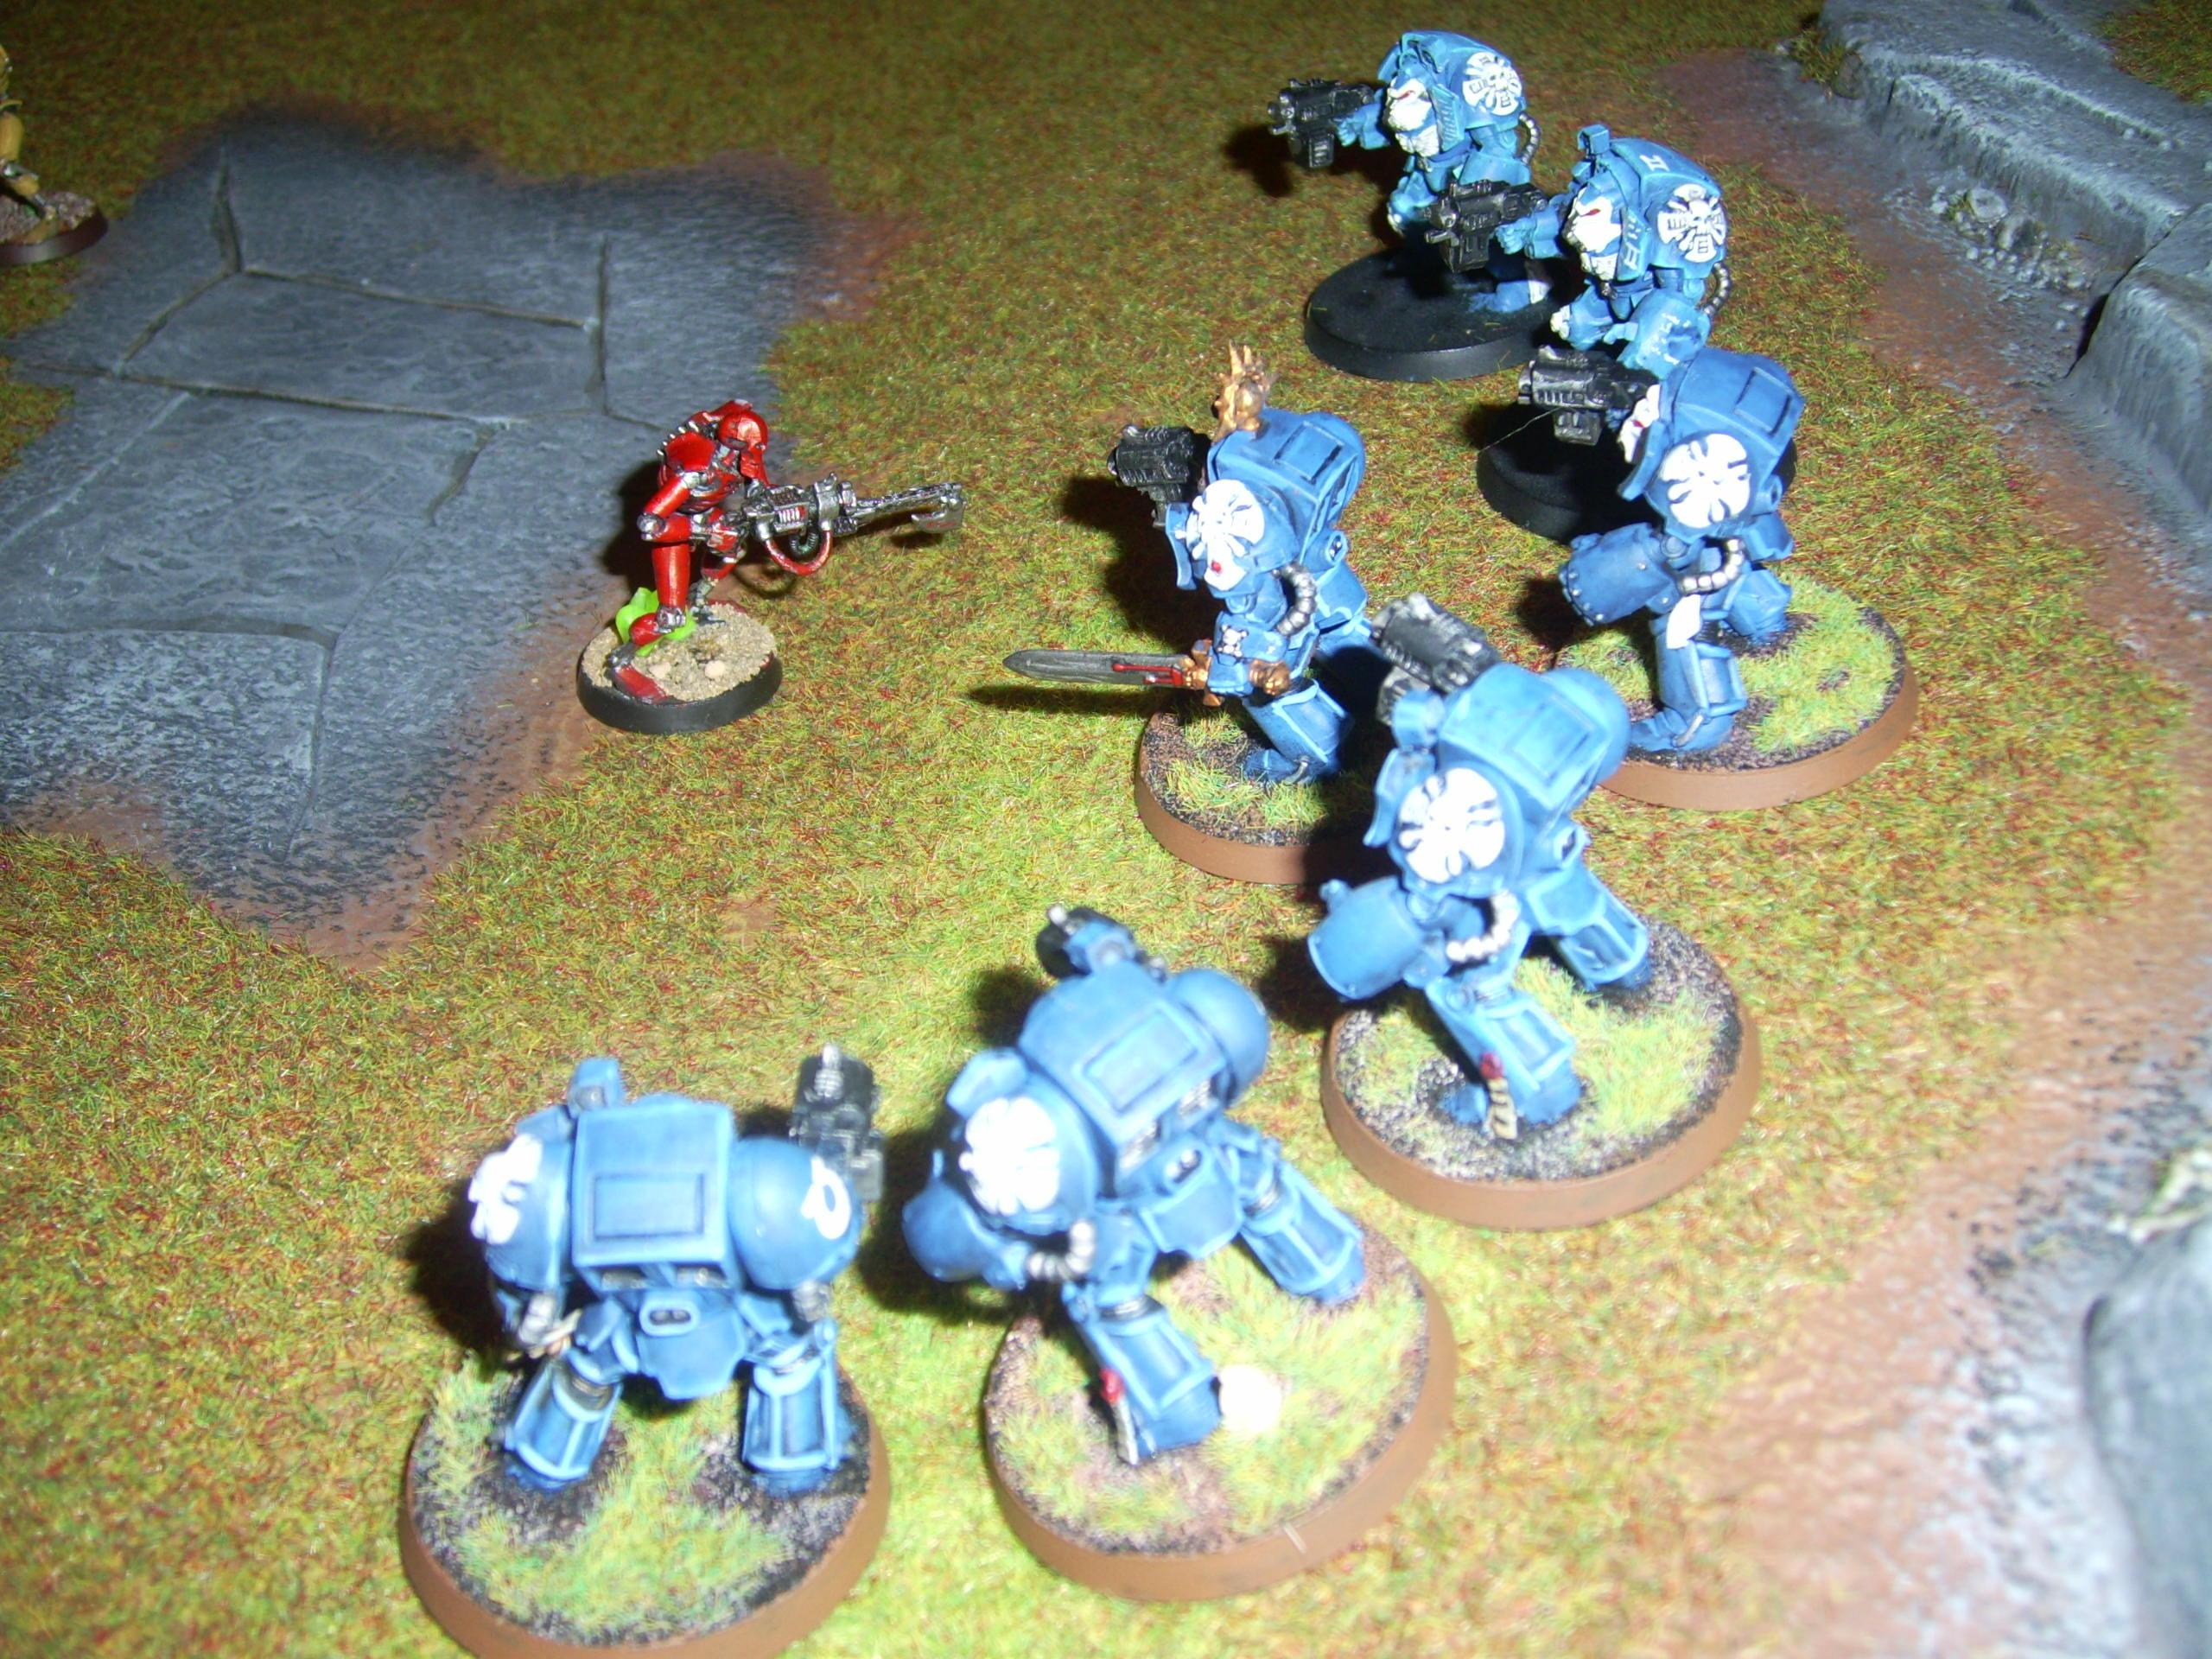 Death Or Glory, Necrons, Red, Space Marine Terminators And Necron, Space Marines, Terminator Armor, Ultramarines